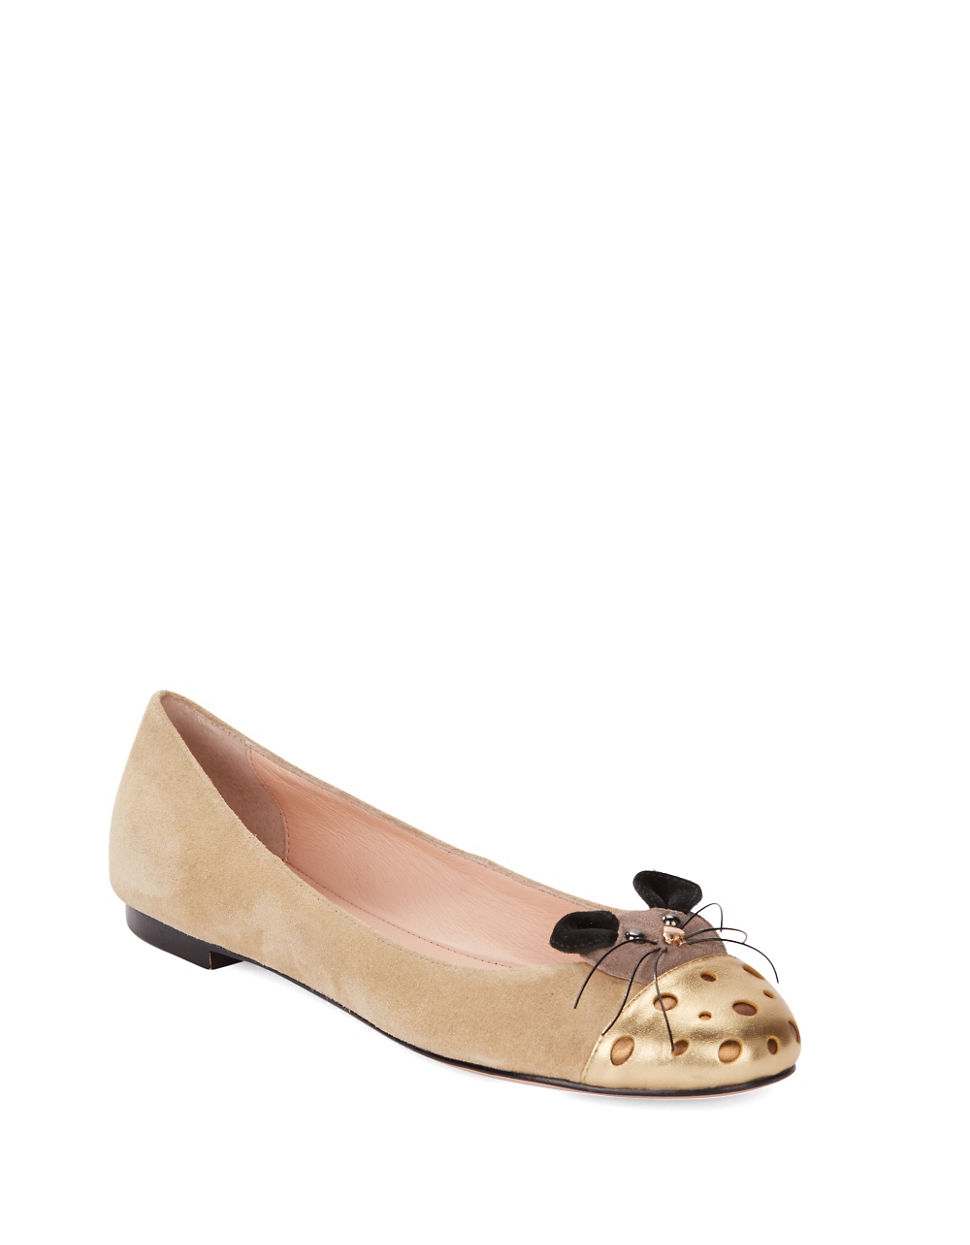 Lyst kate spade new york suede mouse flats in brown for Kate spade new york flats